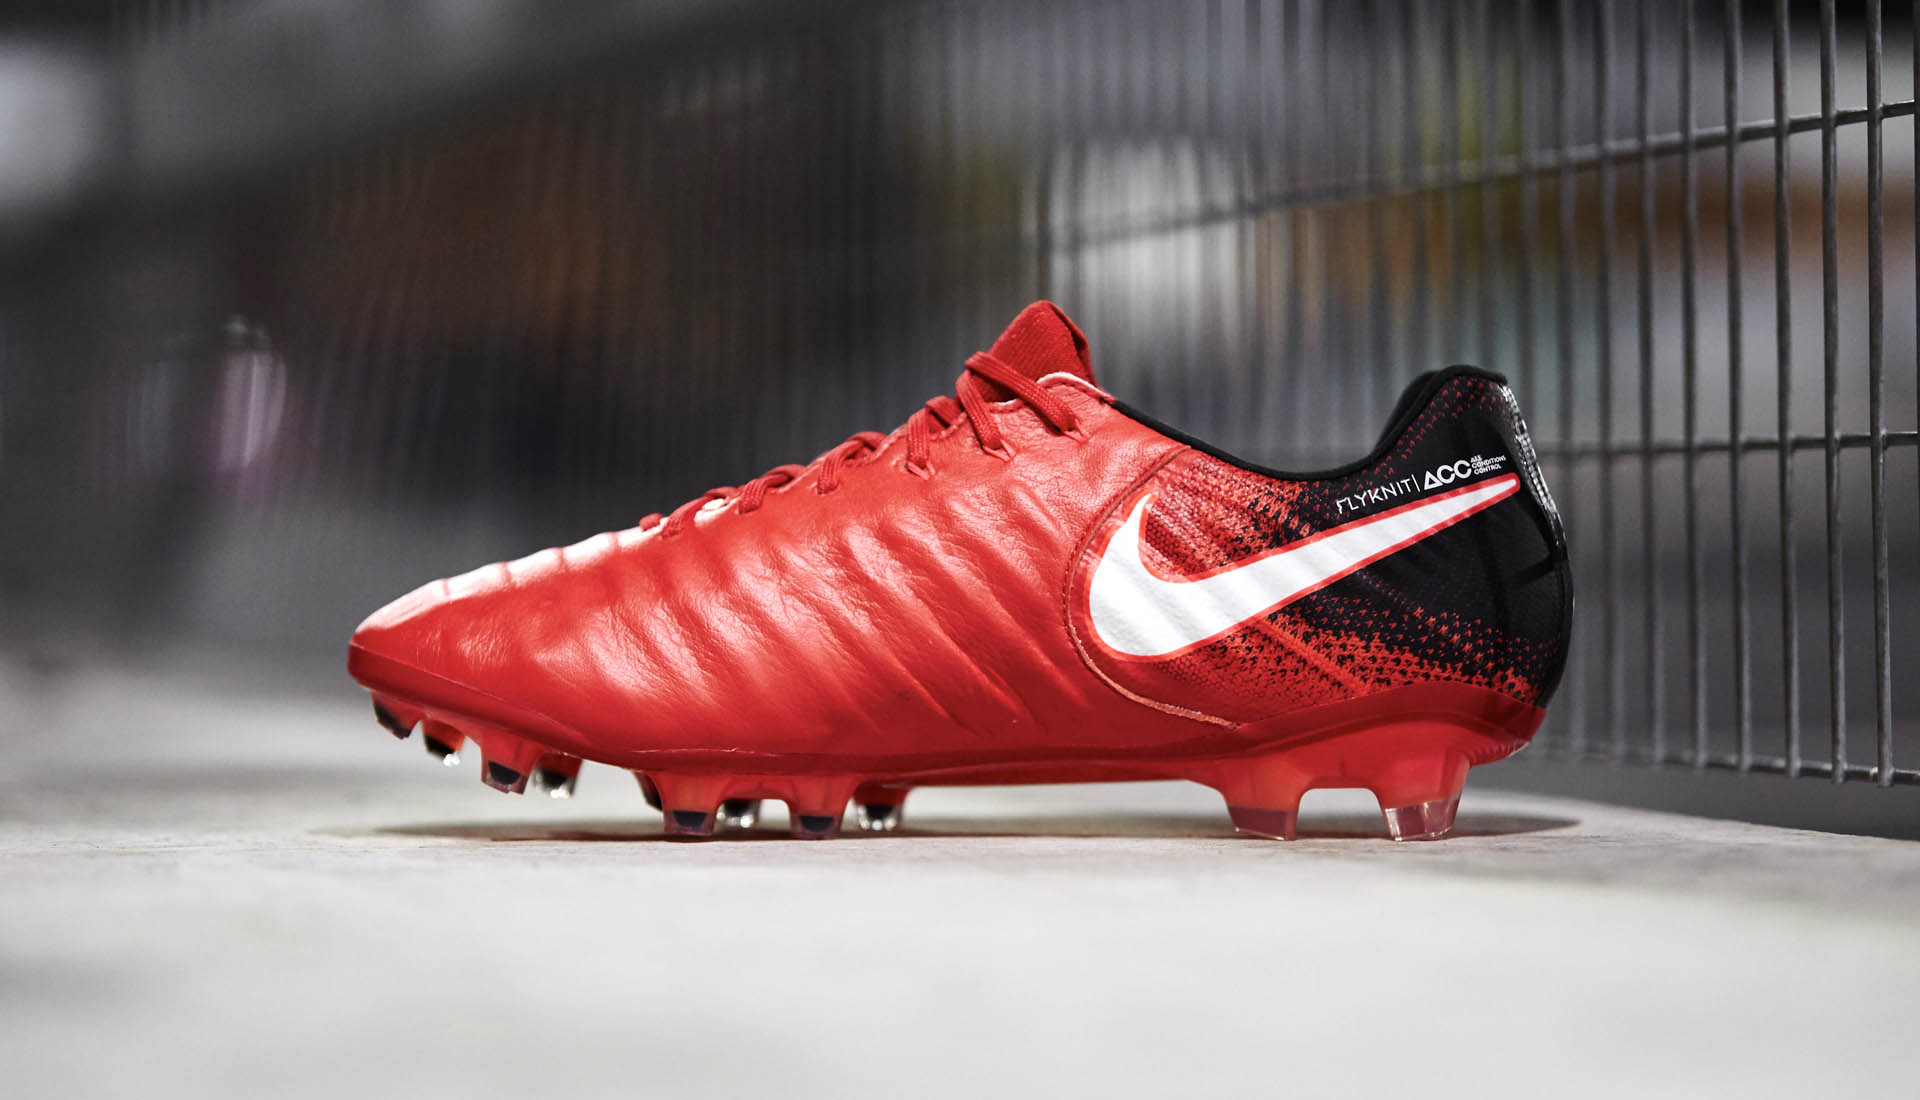 factory price 1b08d 8adea Nike Launch the Fire & Ice Football Boot Pack - SoccerBible